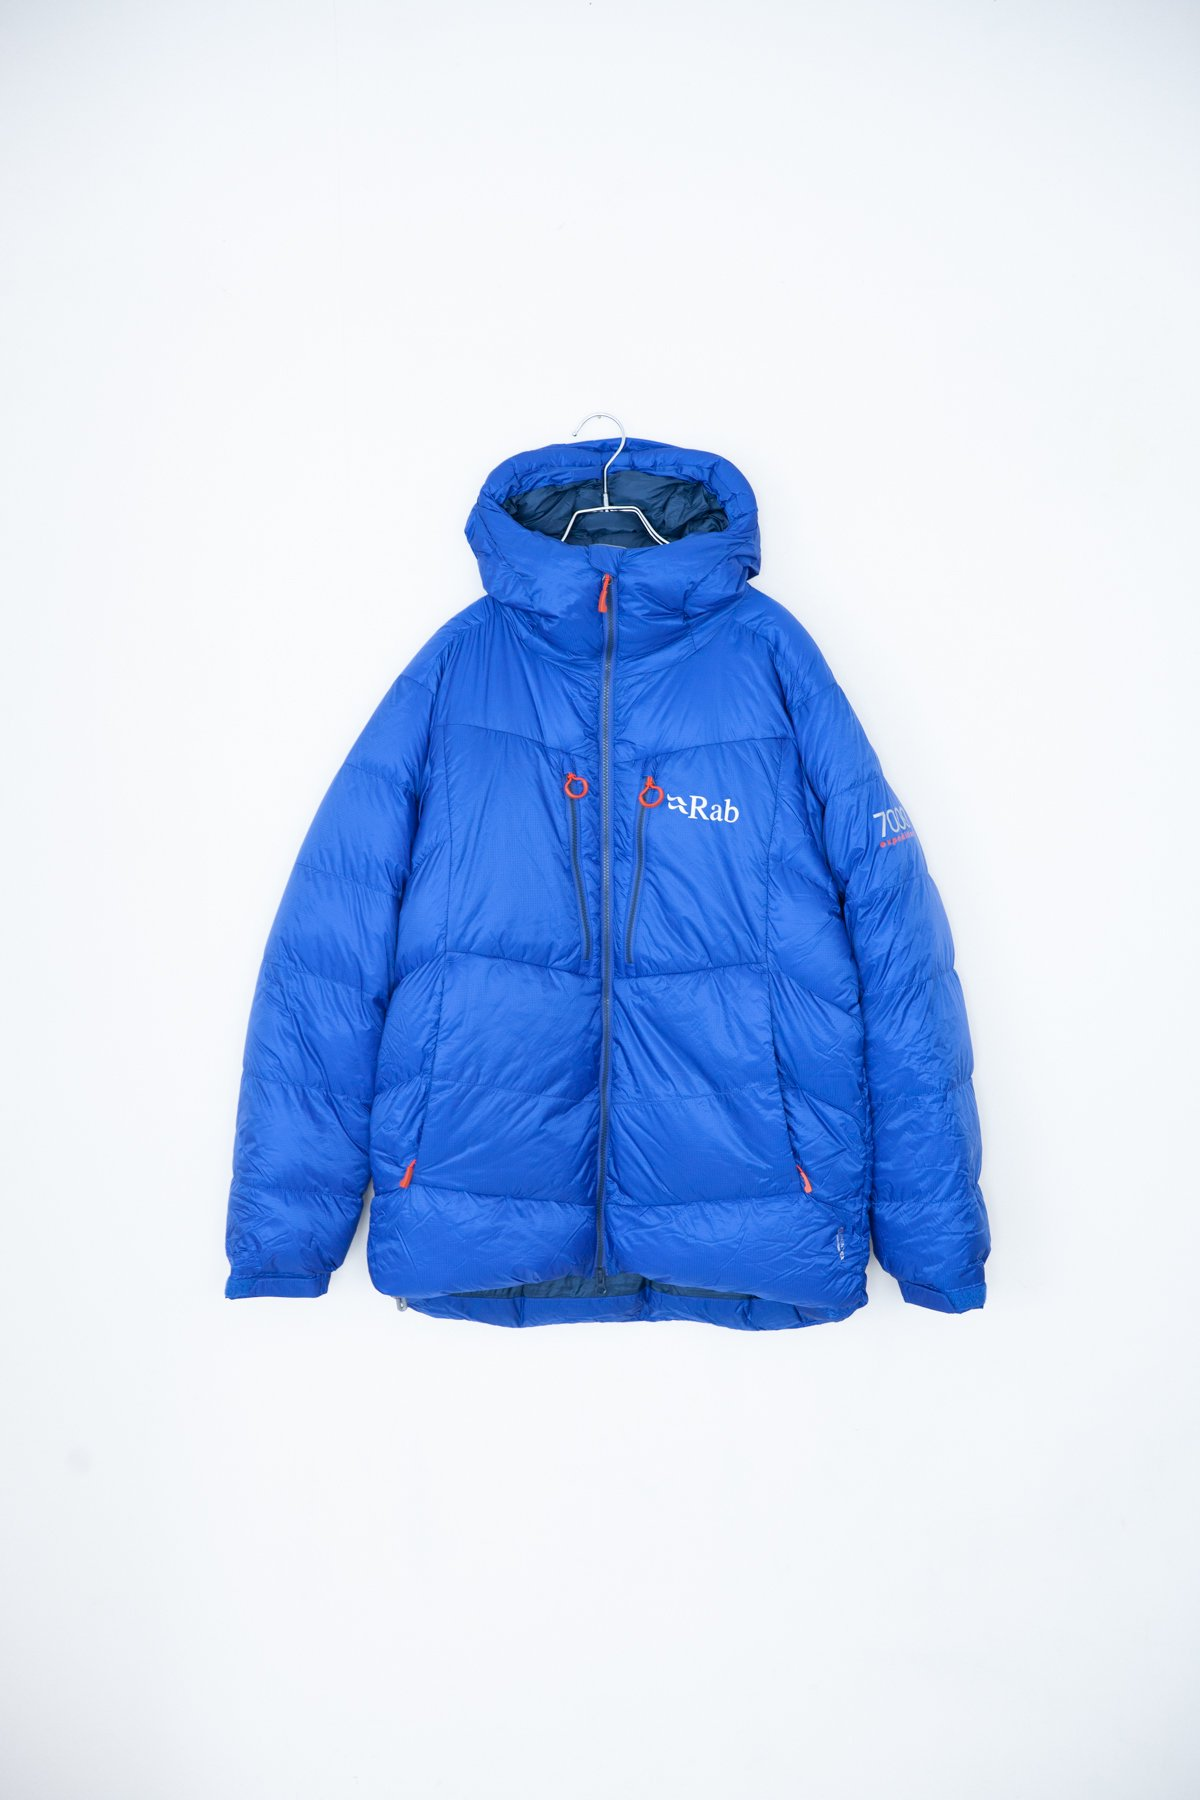 Rab / Expedition 7000 JKT